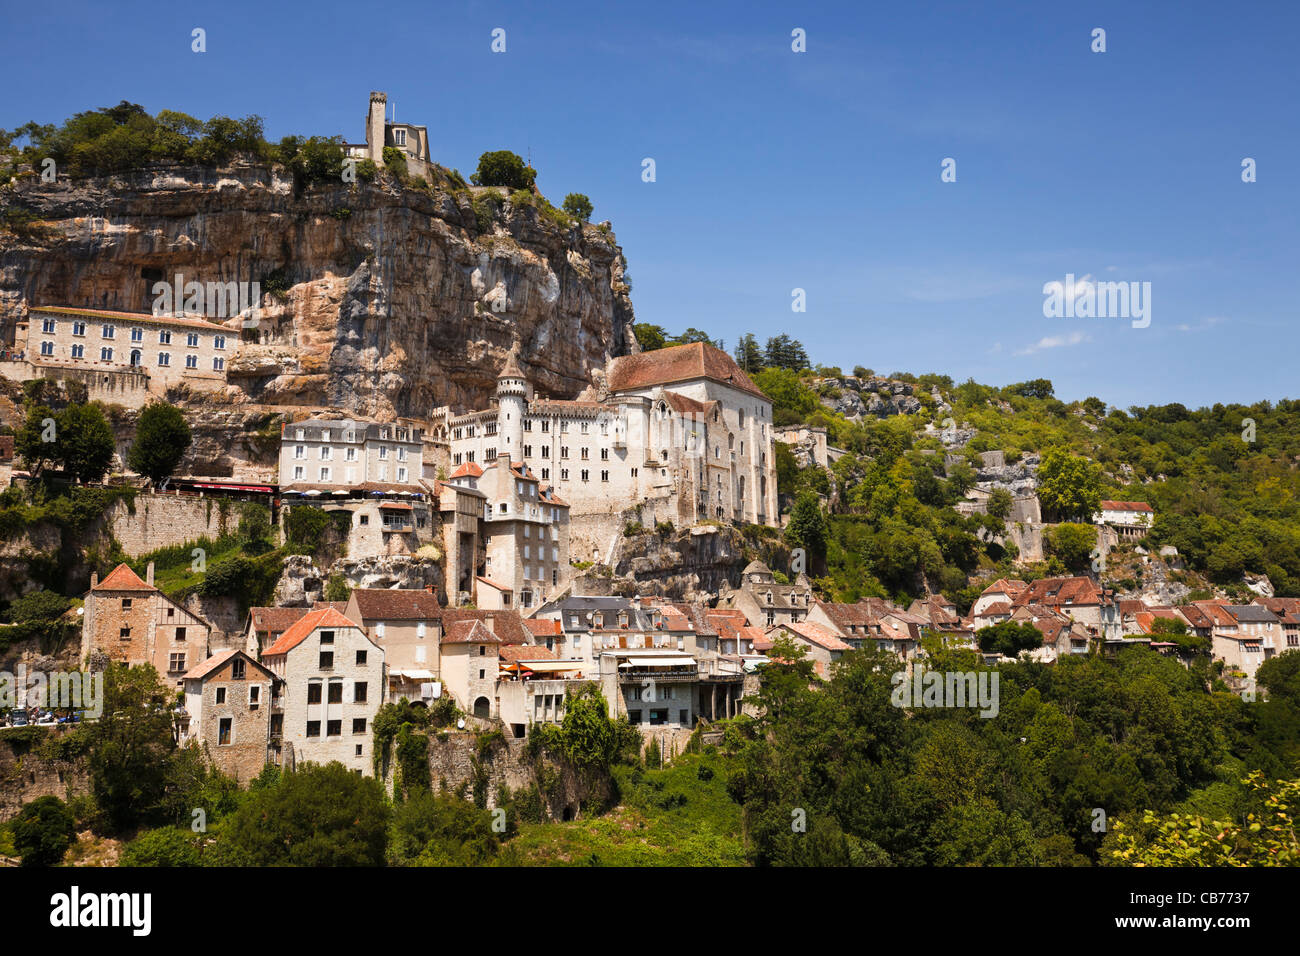 Rocamadour, Lot, France, Europe - Stock Image